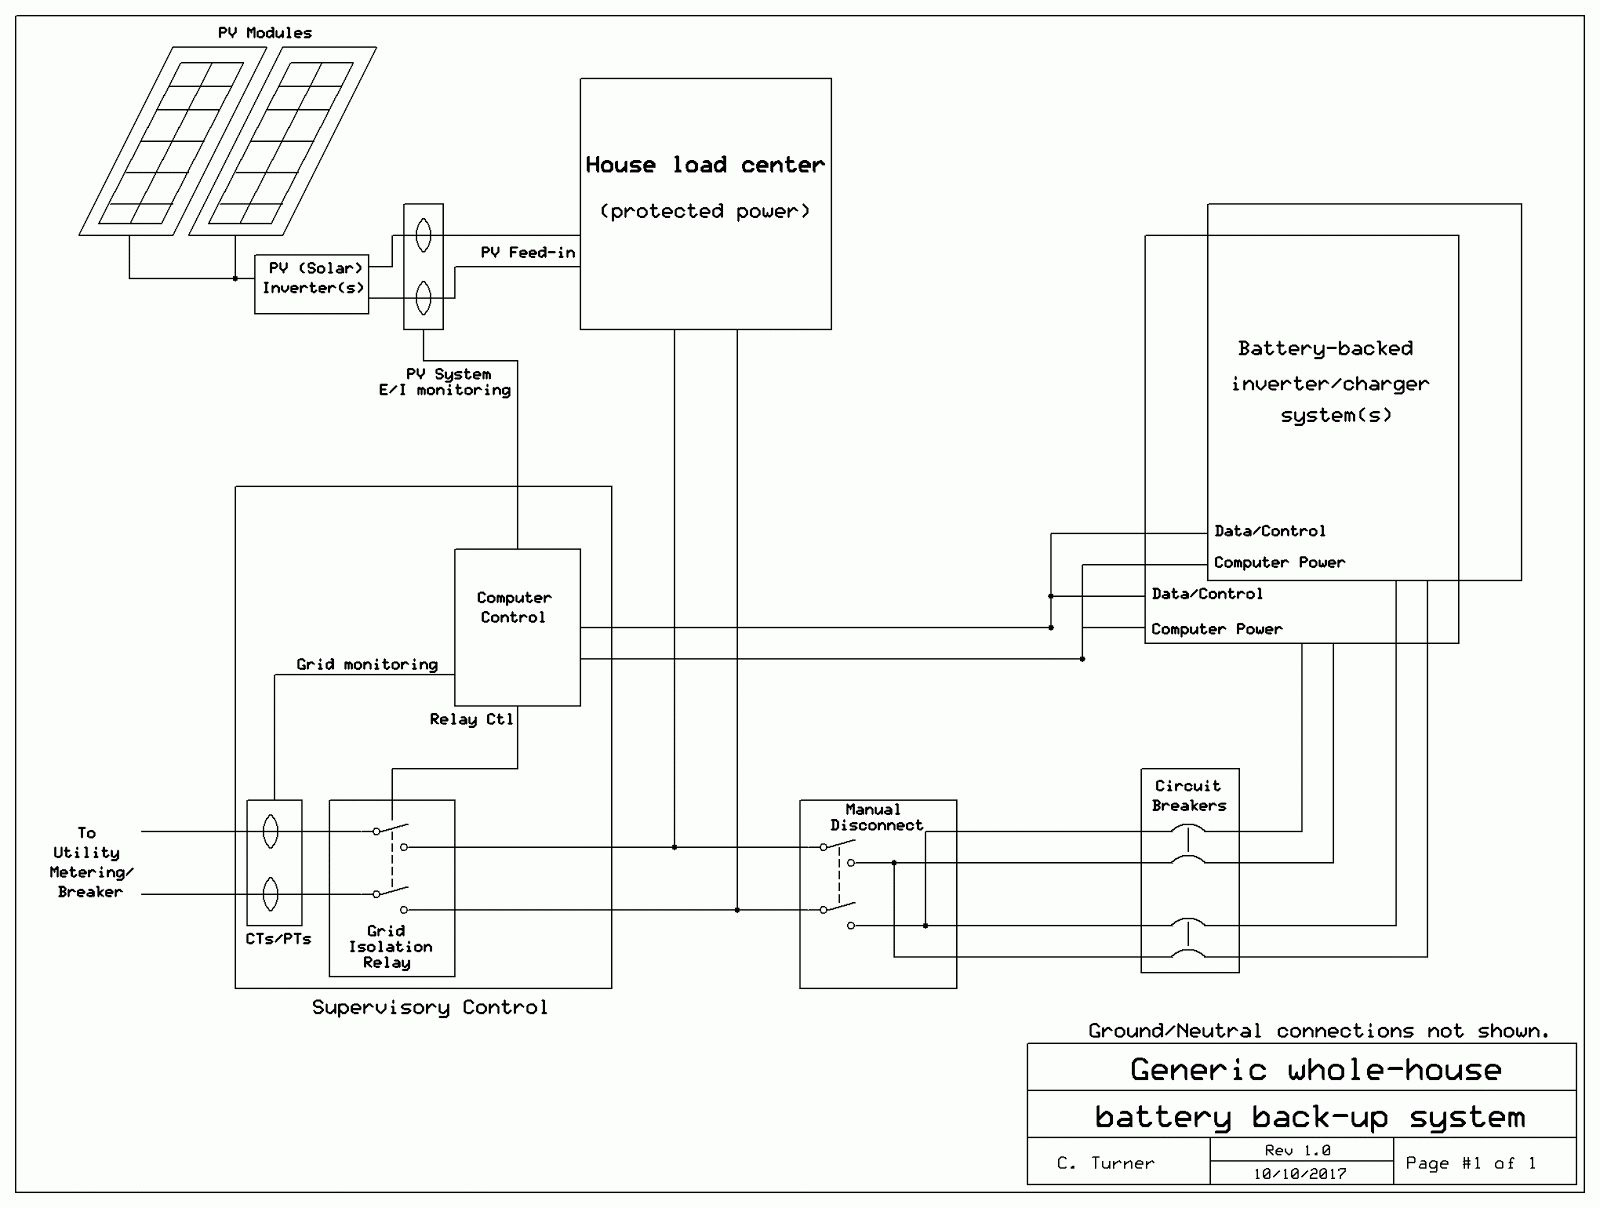 Tesla Battery Diagram Ka7Oei's Blog Does The Tesla Powerwall 2 - Tesla Powerwall 2 Wiring Diagram